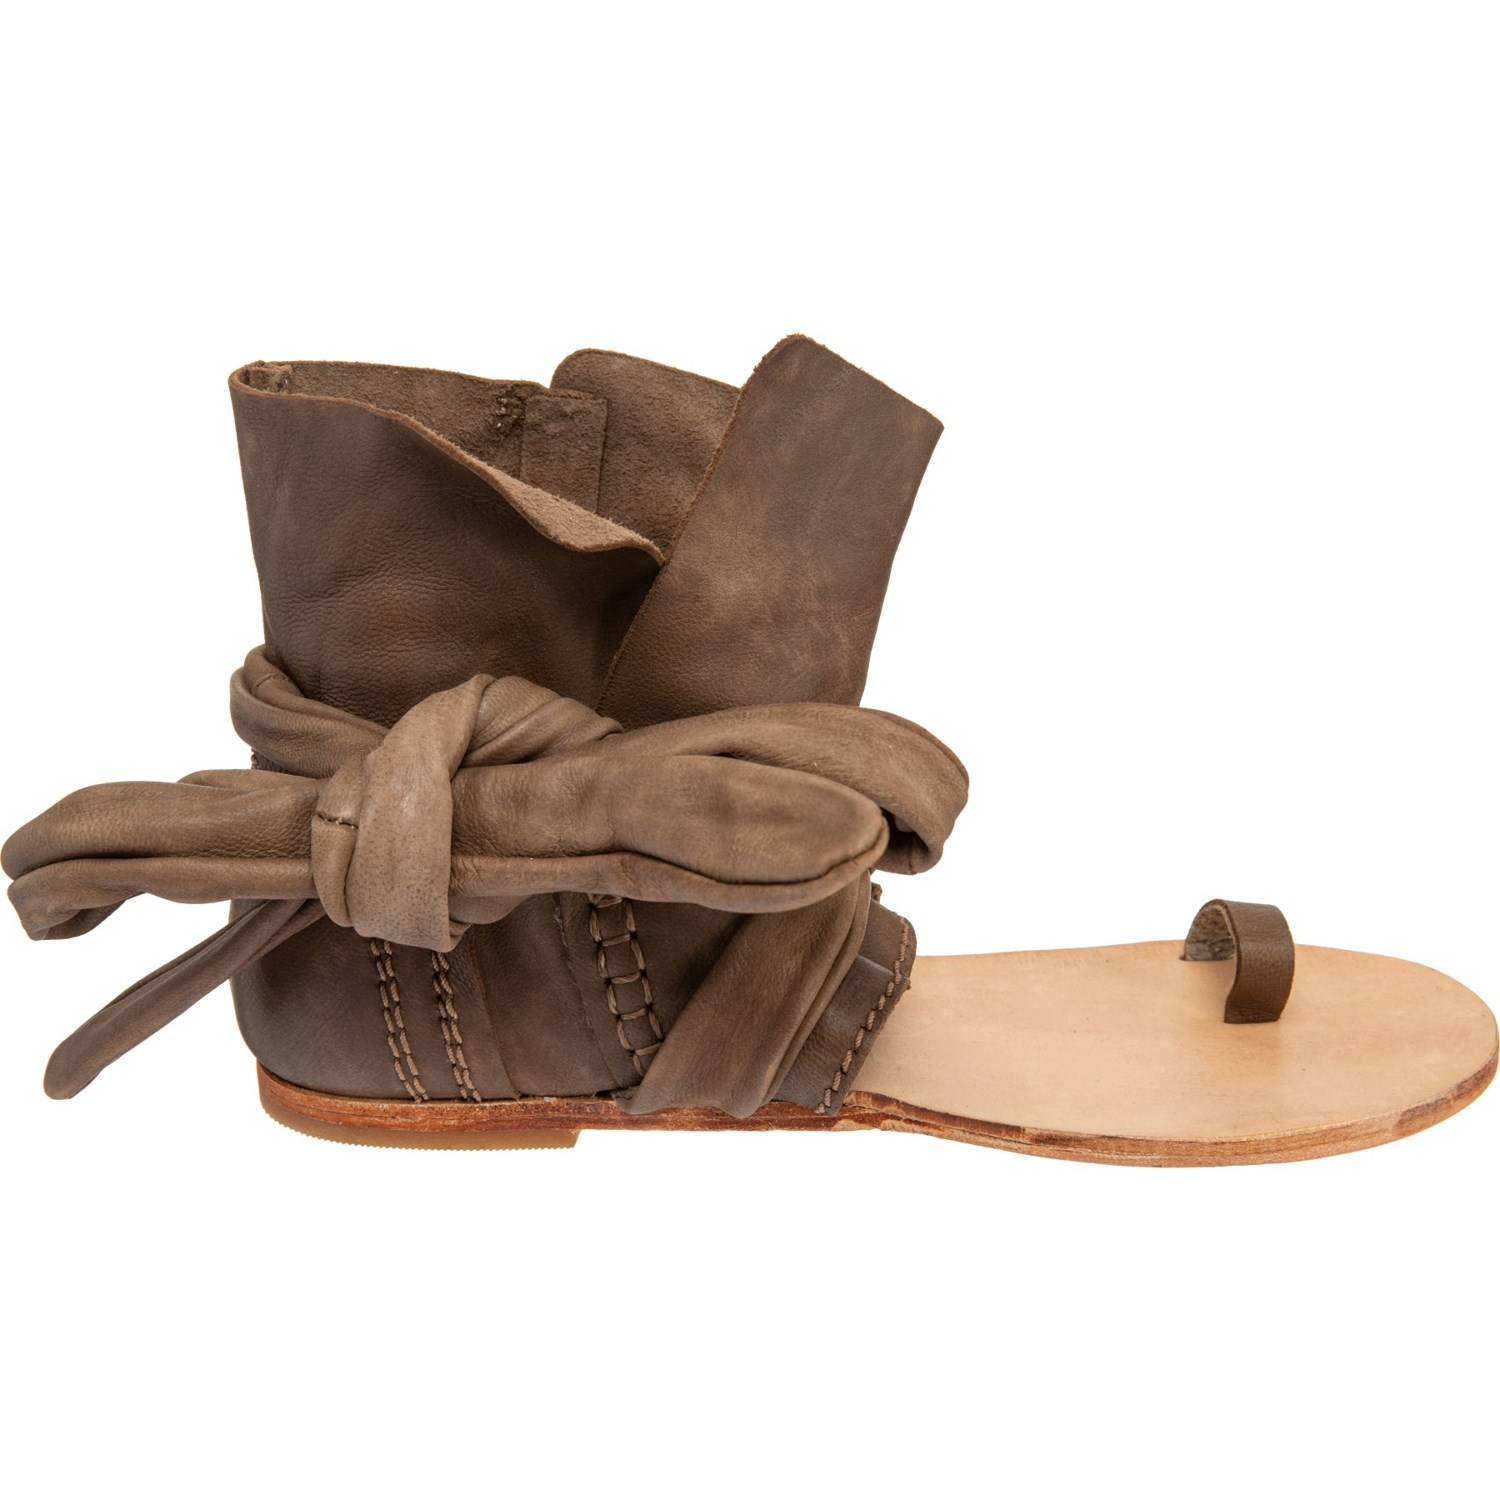 698d8adfc Free People Delaney Boot Sandals (For Women) - Save 53%